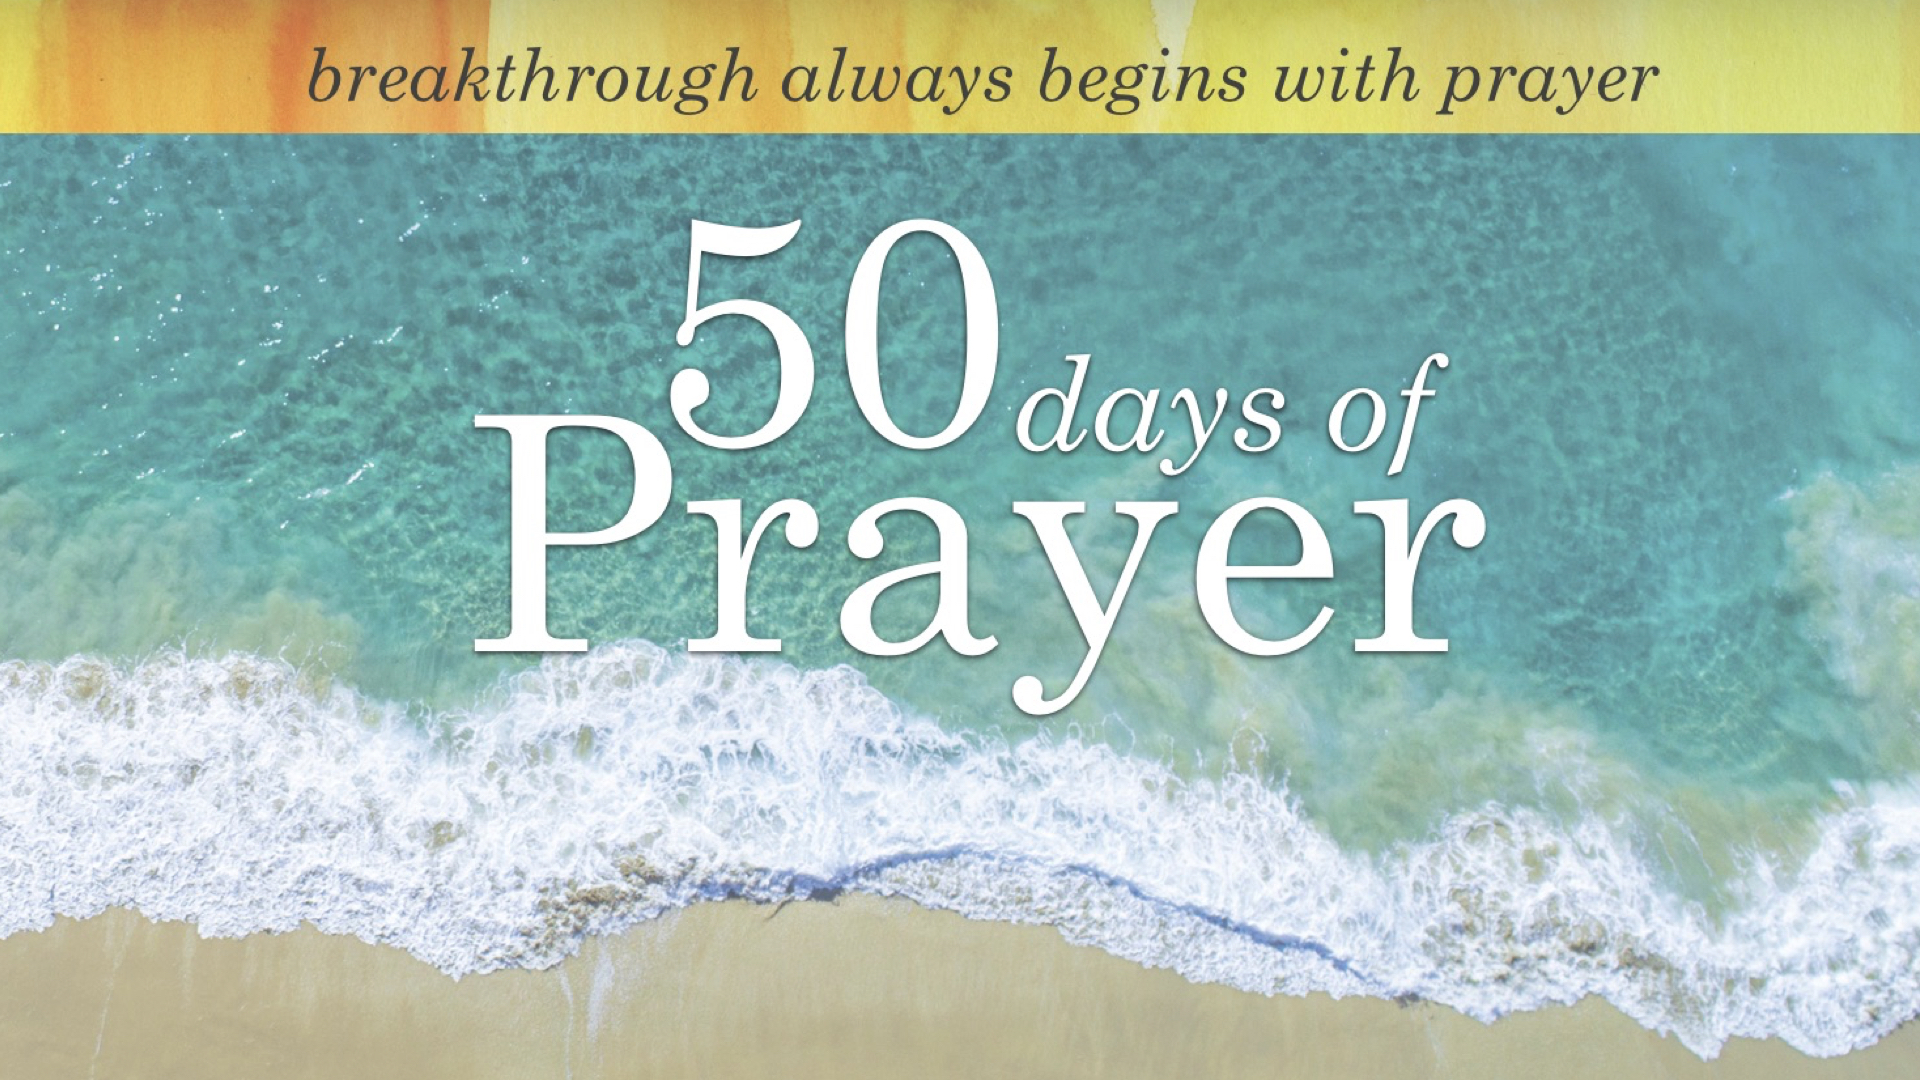 50 days of prayer 1: DO YOU REALLY WANT TO GROW UP? - PHIL CHORLIAN | 10.7.2018 | WATCH